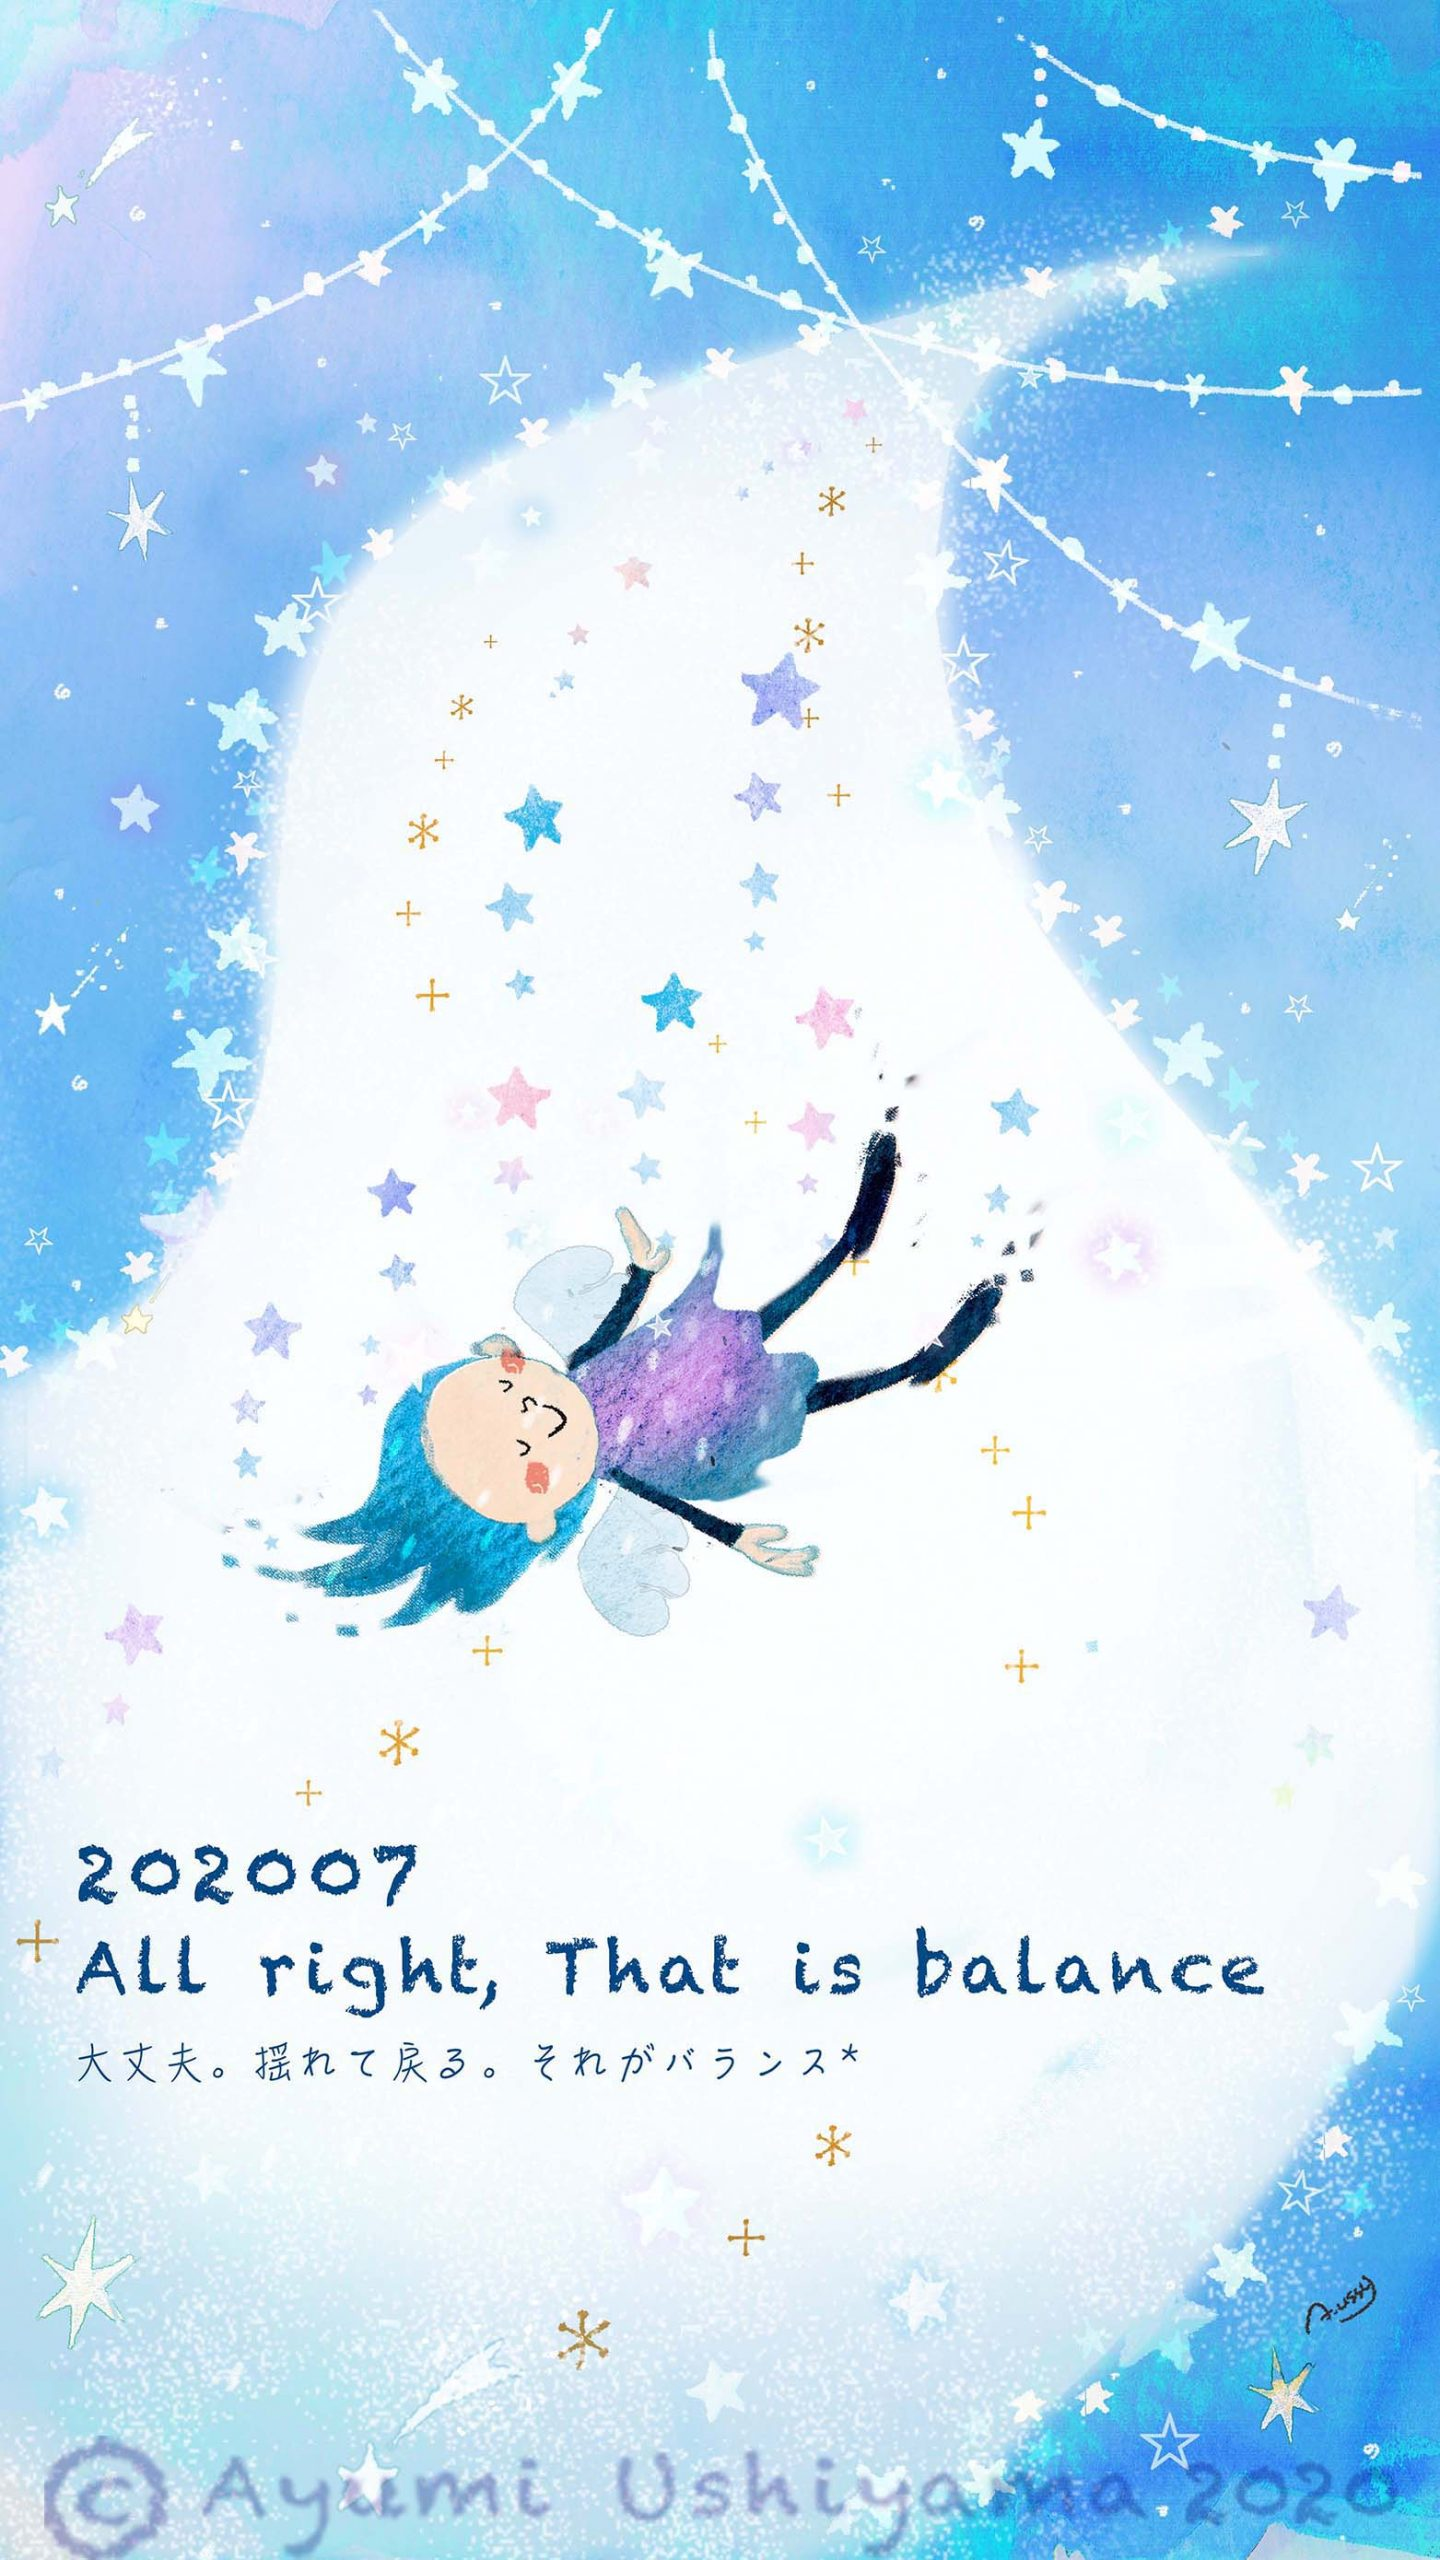 2020.07『All right, That is balance』